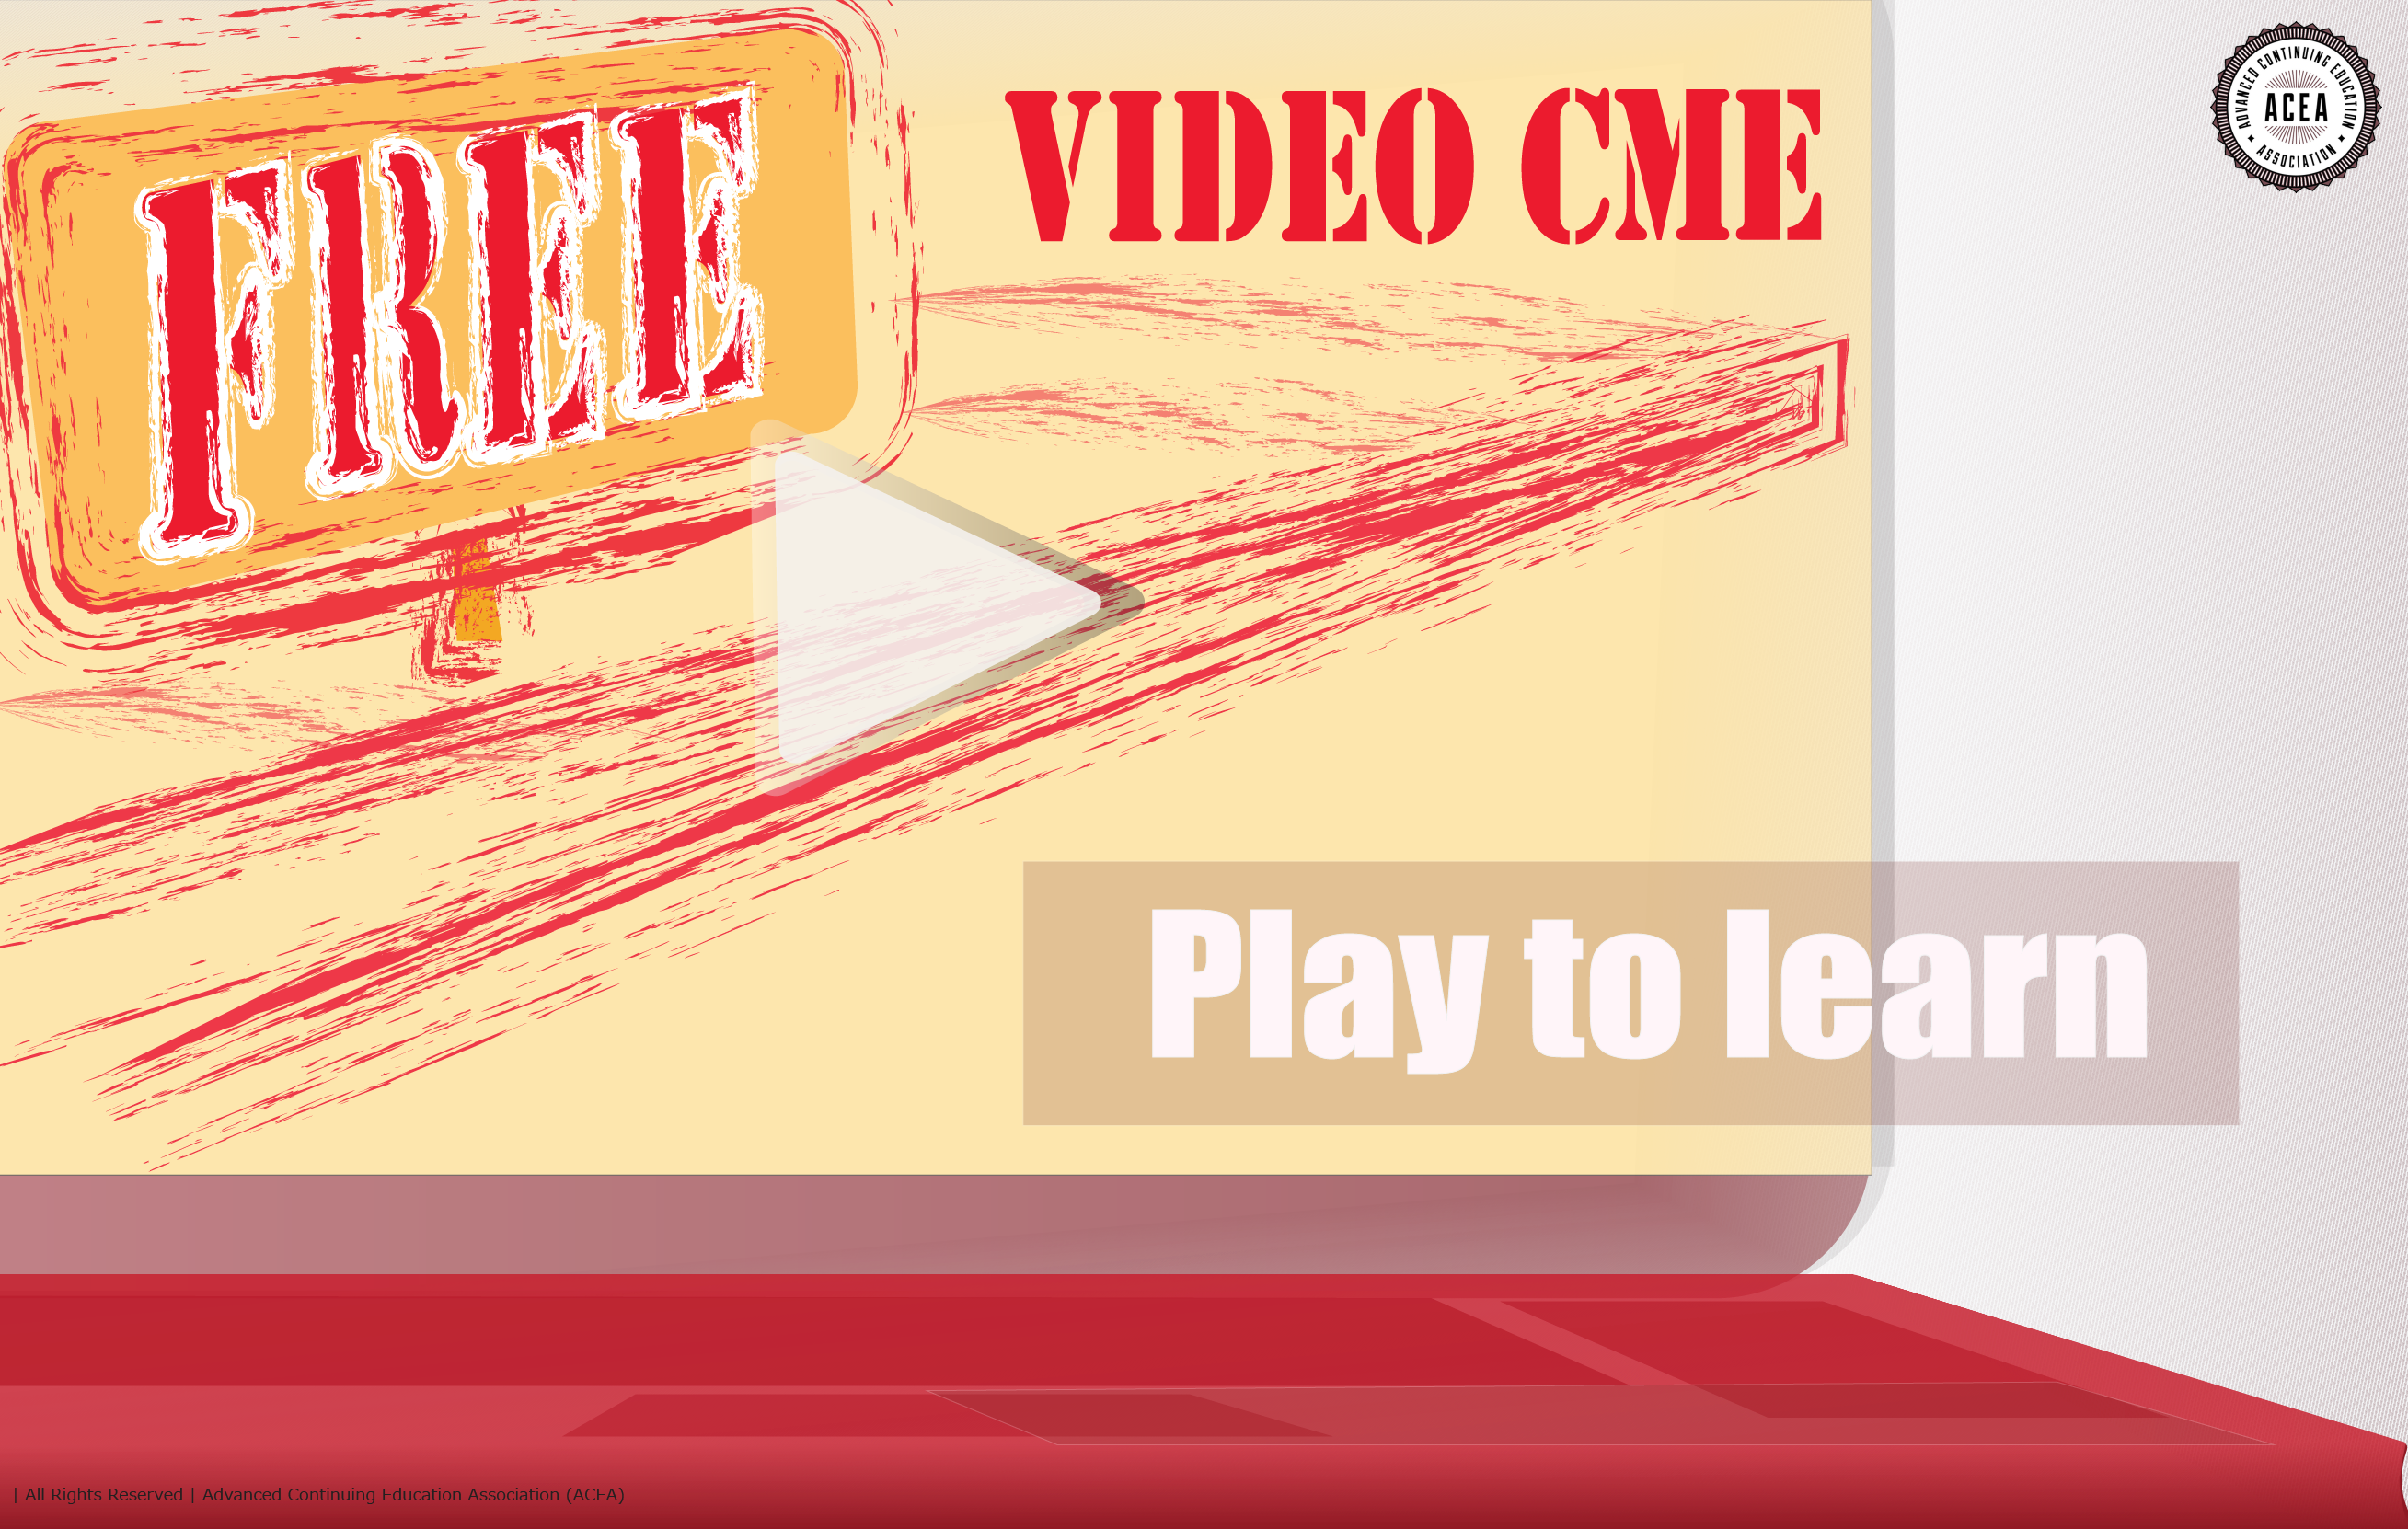 Free video cme